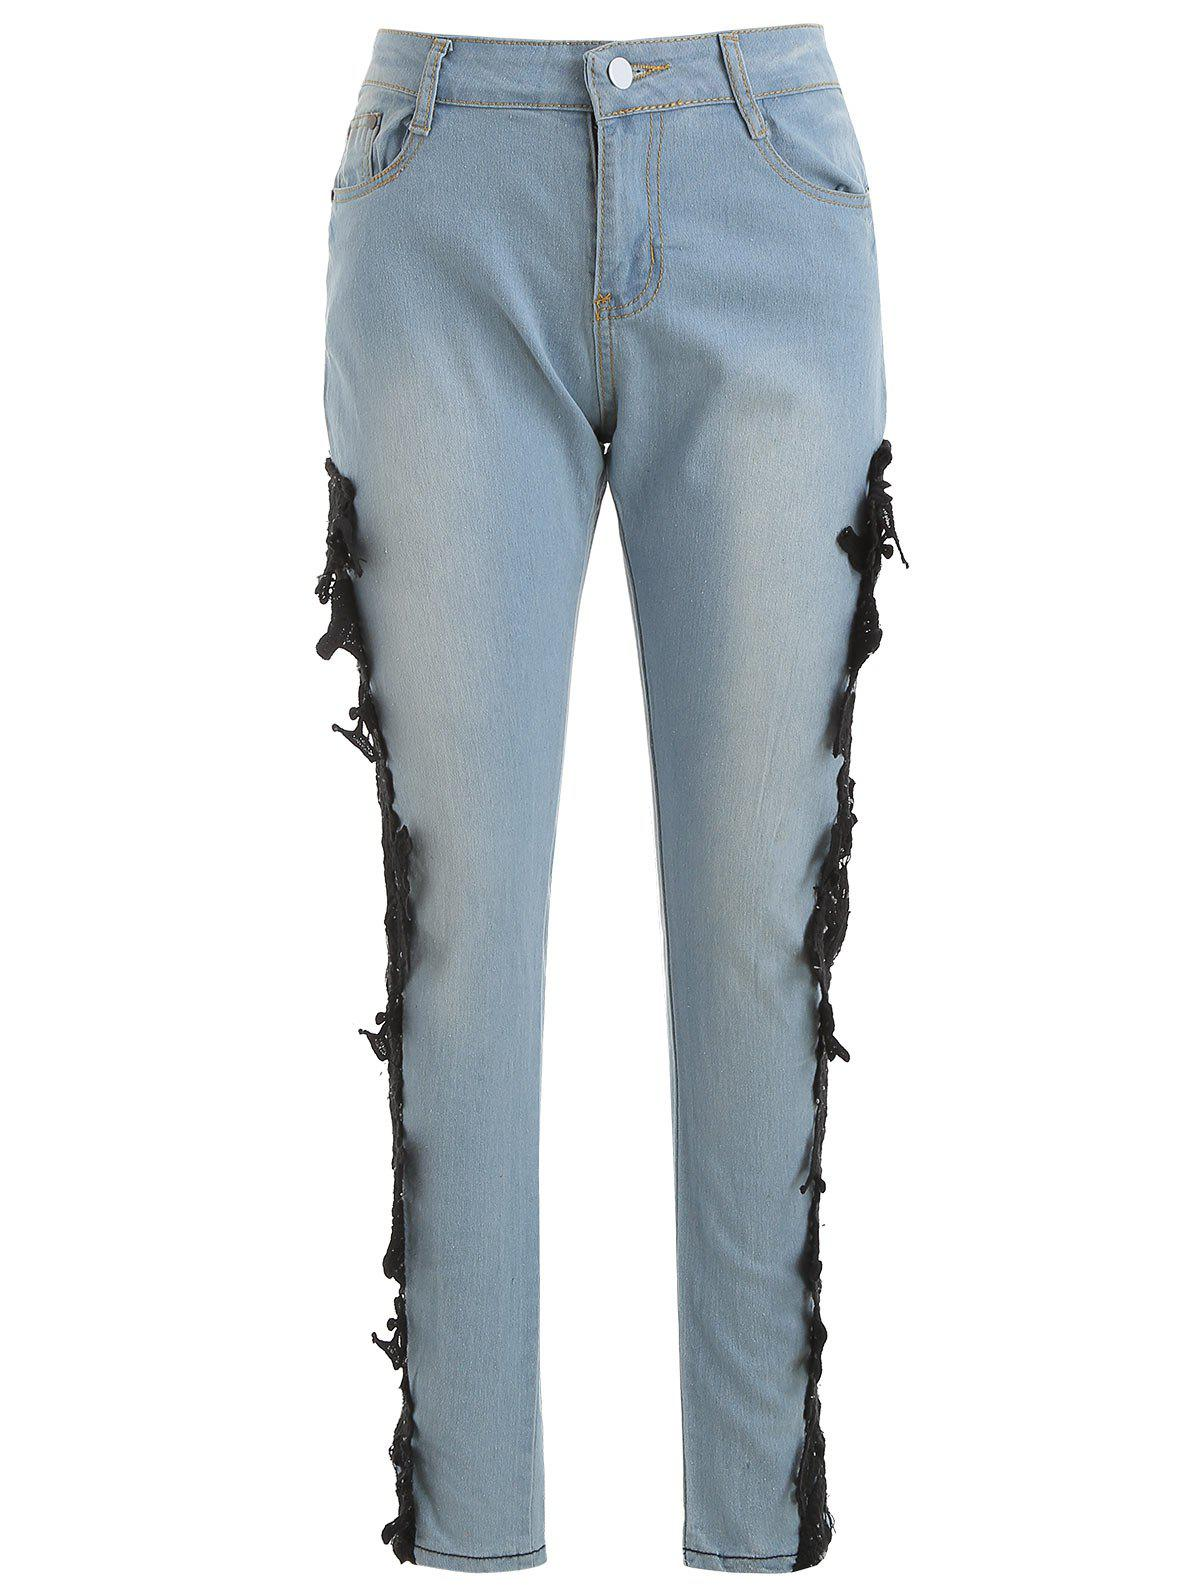 Buy Lace Panel Skinny Jeans